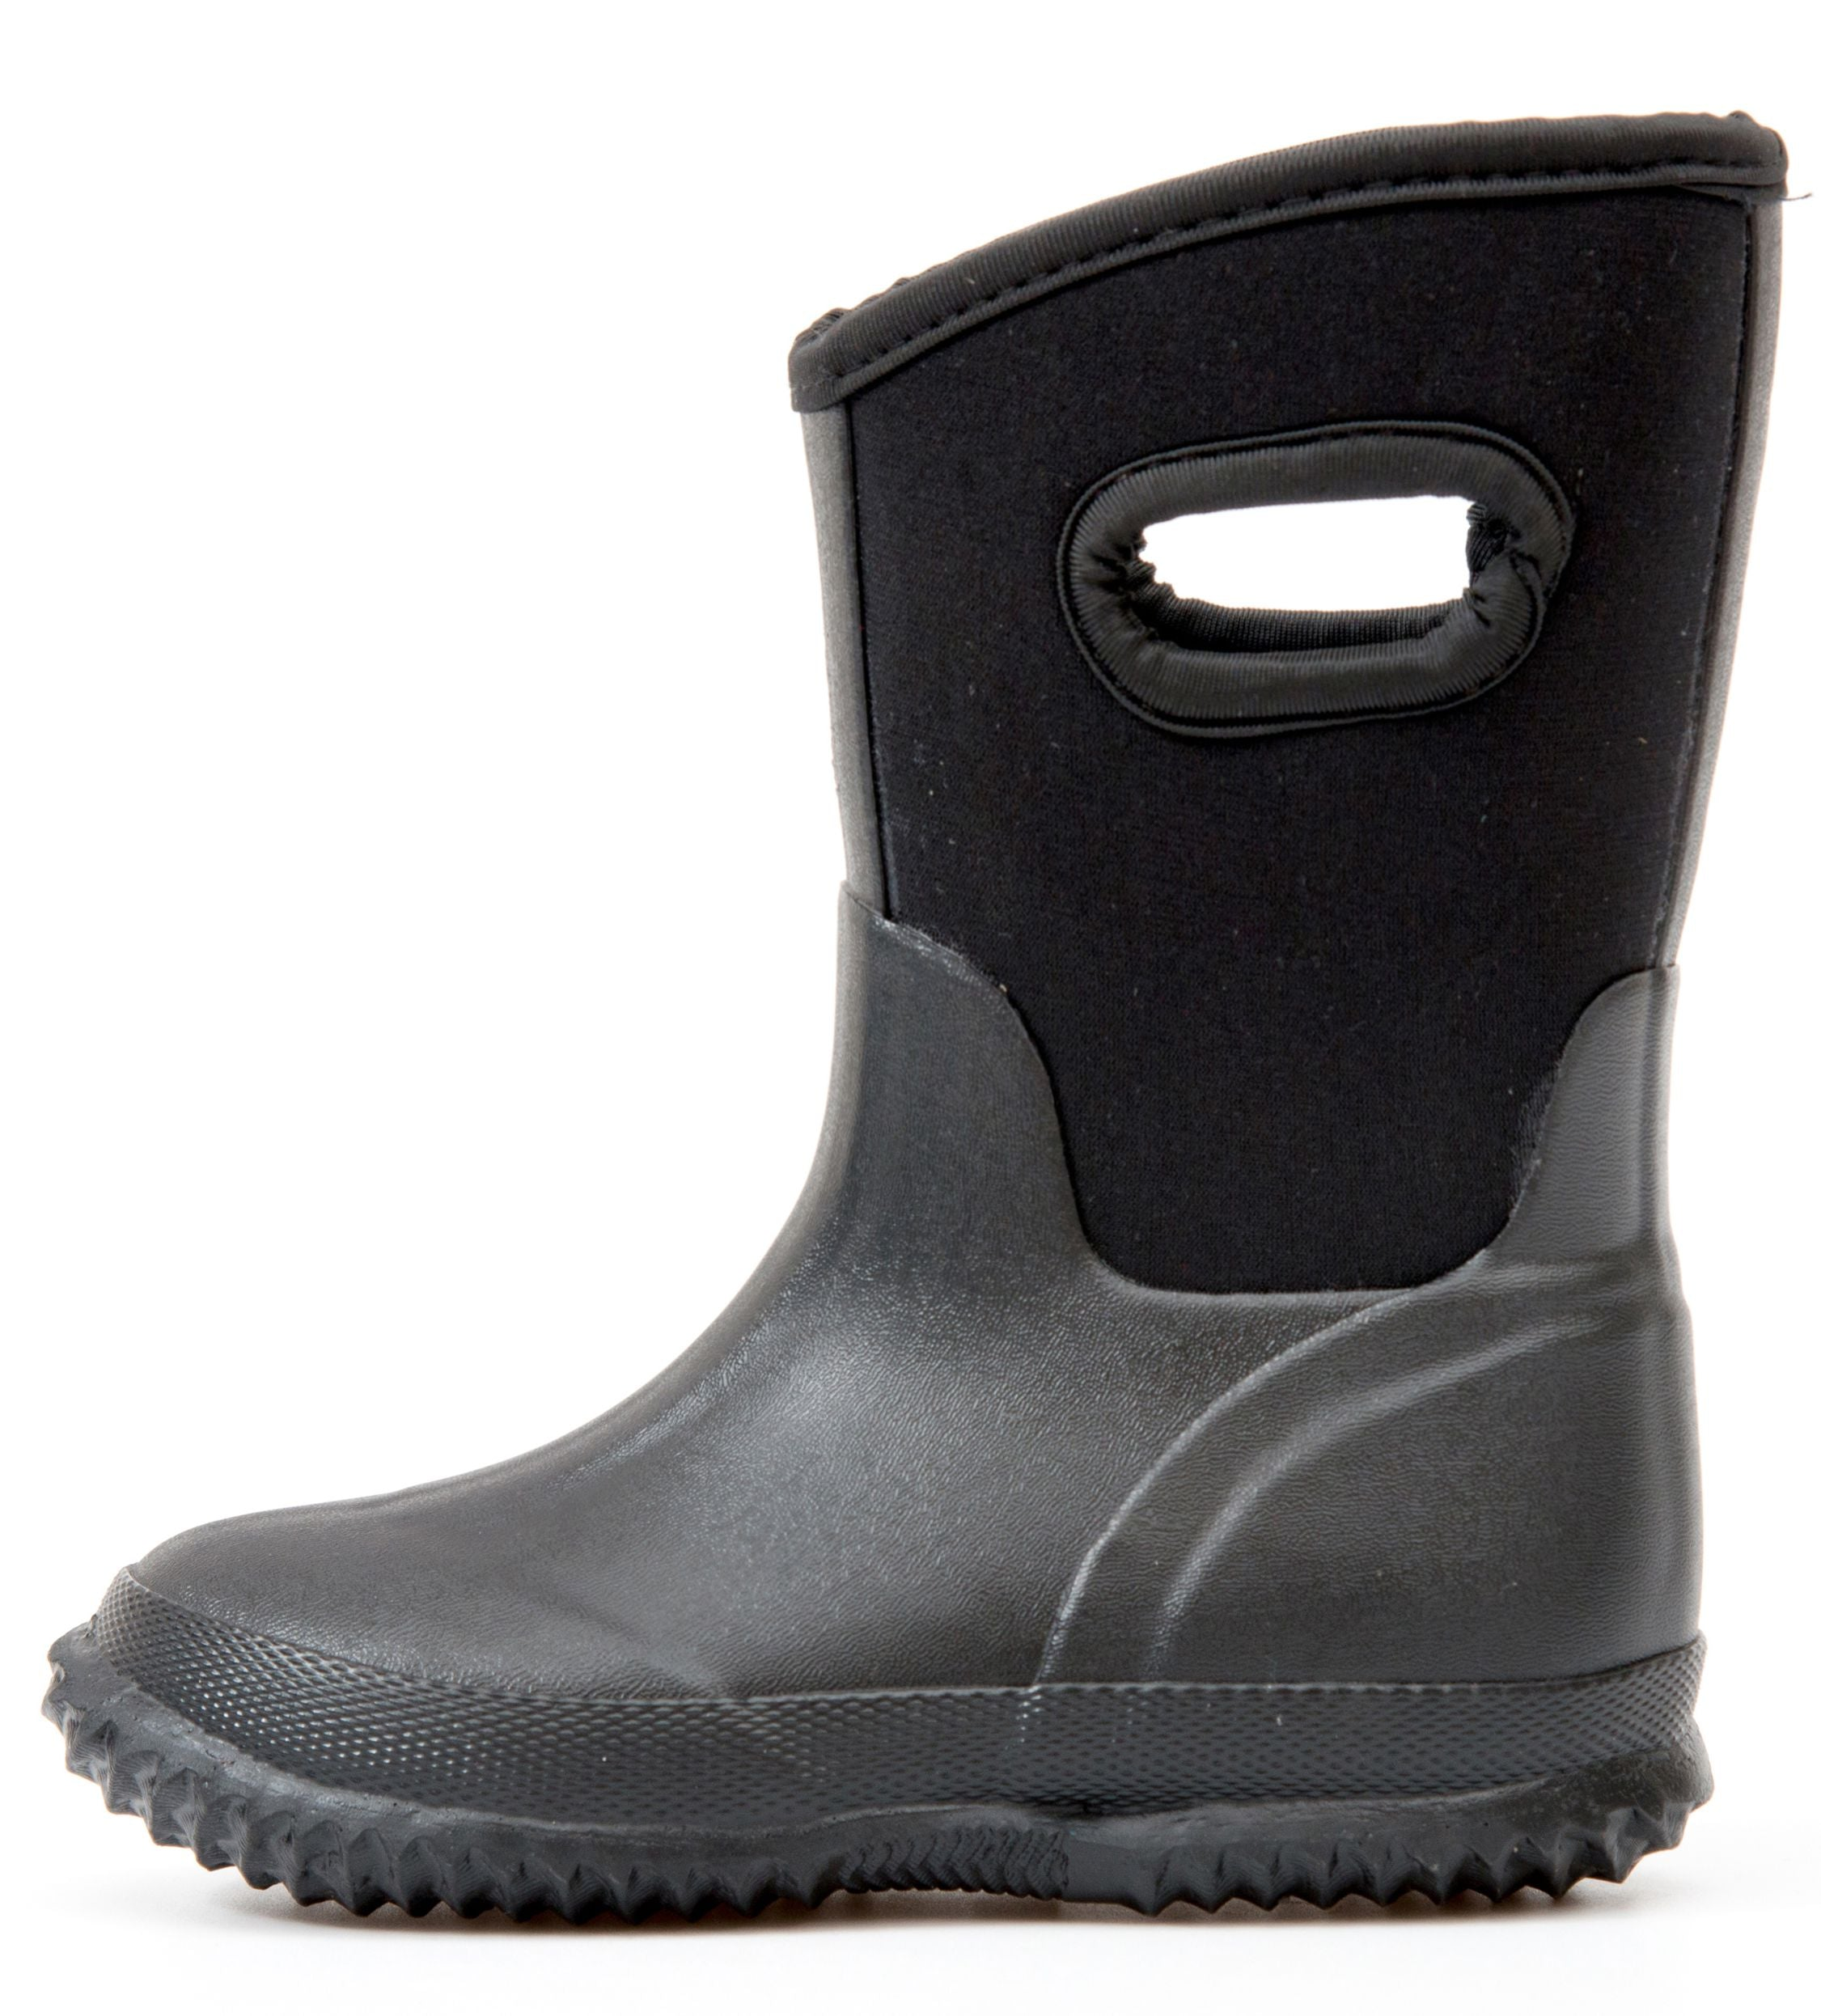 Outee Kids Boys Neoprene Snow Boots Mud Boots - Black